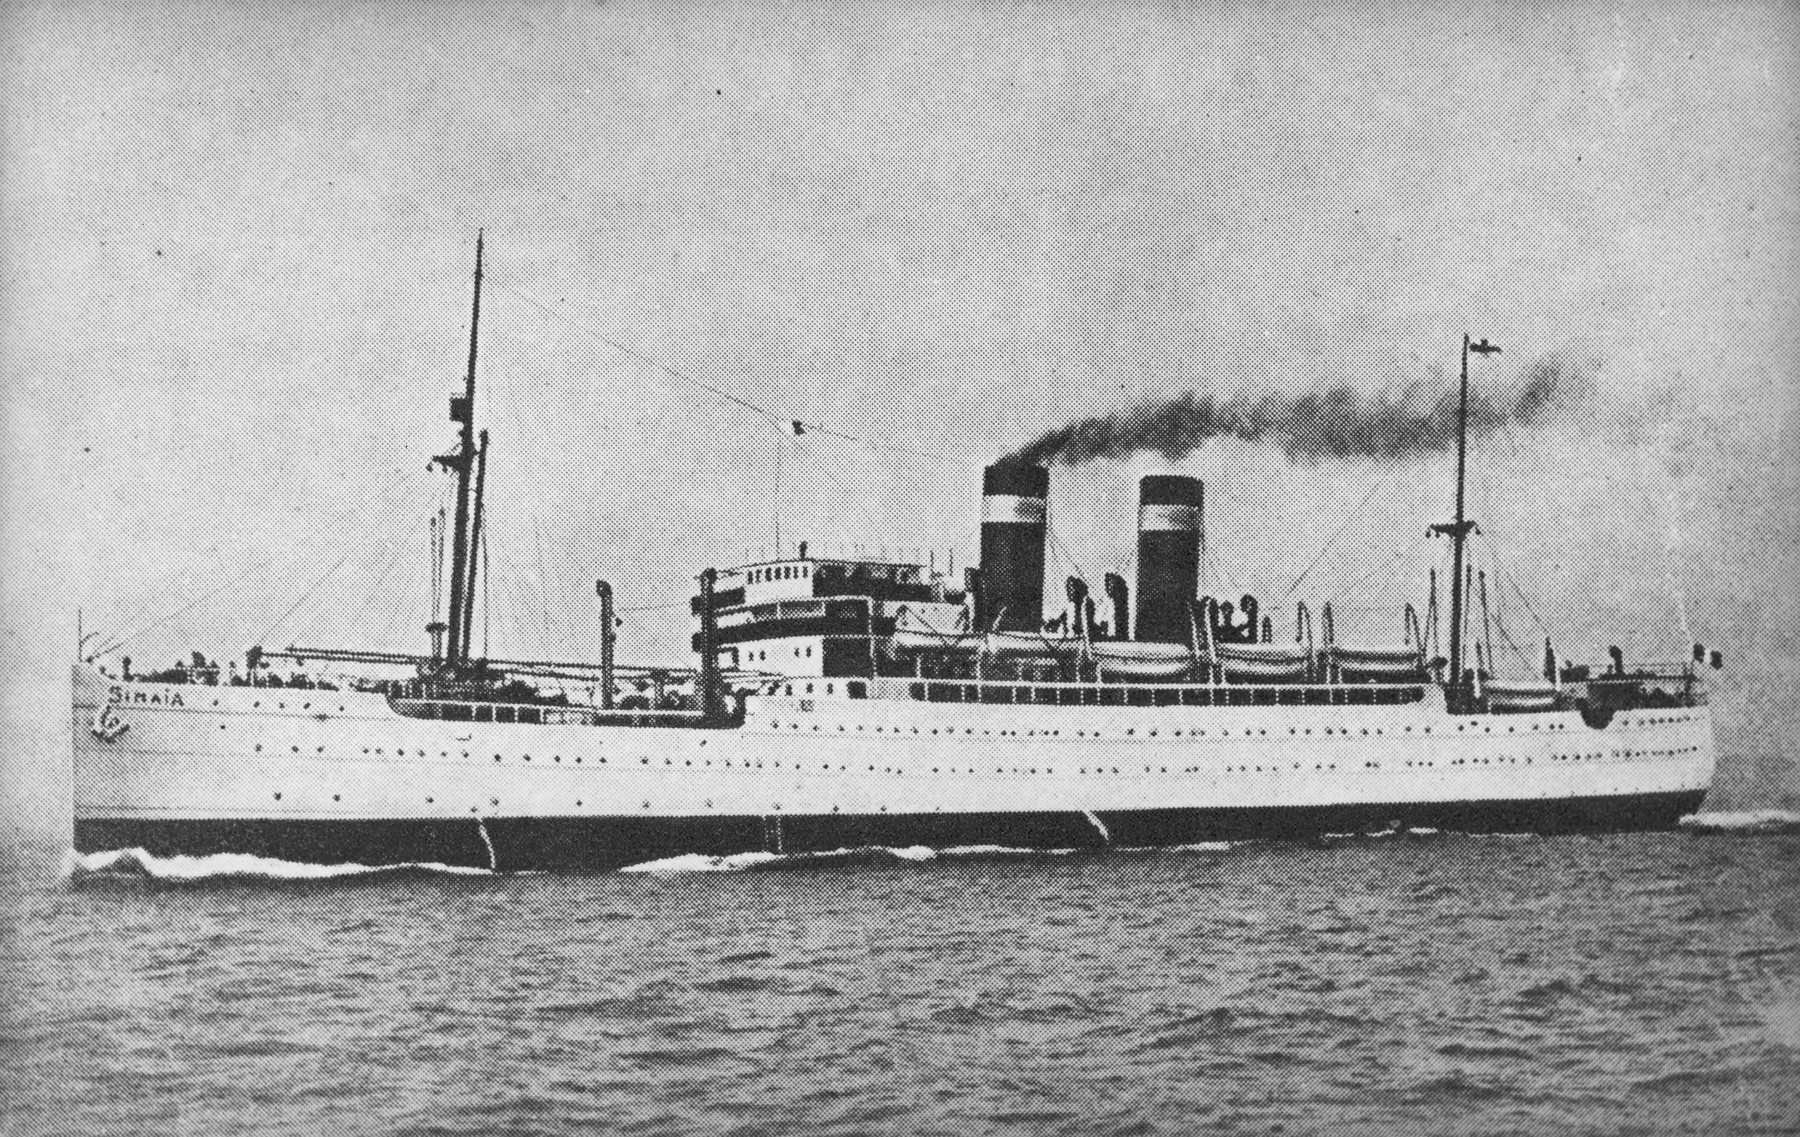 Picture postcard of the SS Sinaia, one of the ships of the Compagnie Francaise de Navigation a Vapeur Cyprien Fabre & Compagnie line that sailed between Marseilles and destinations in North and South America.